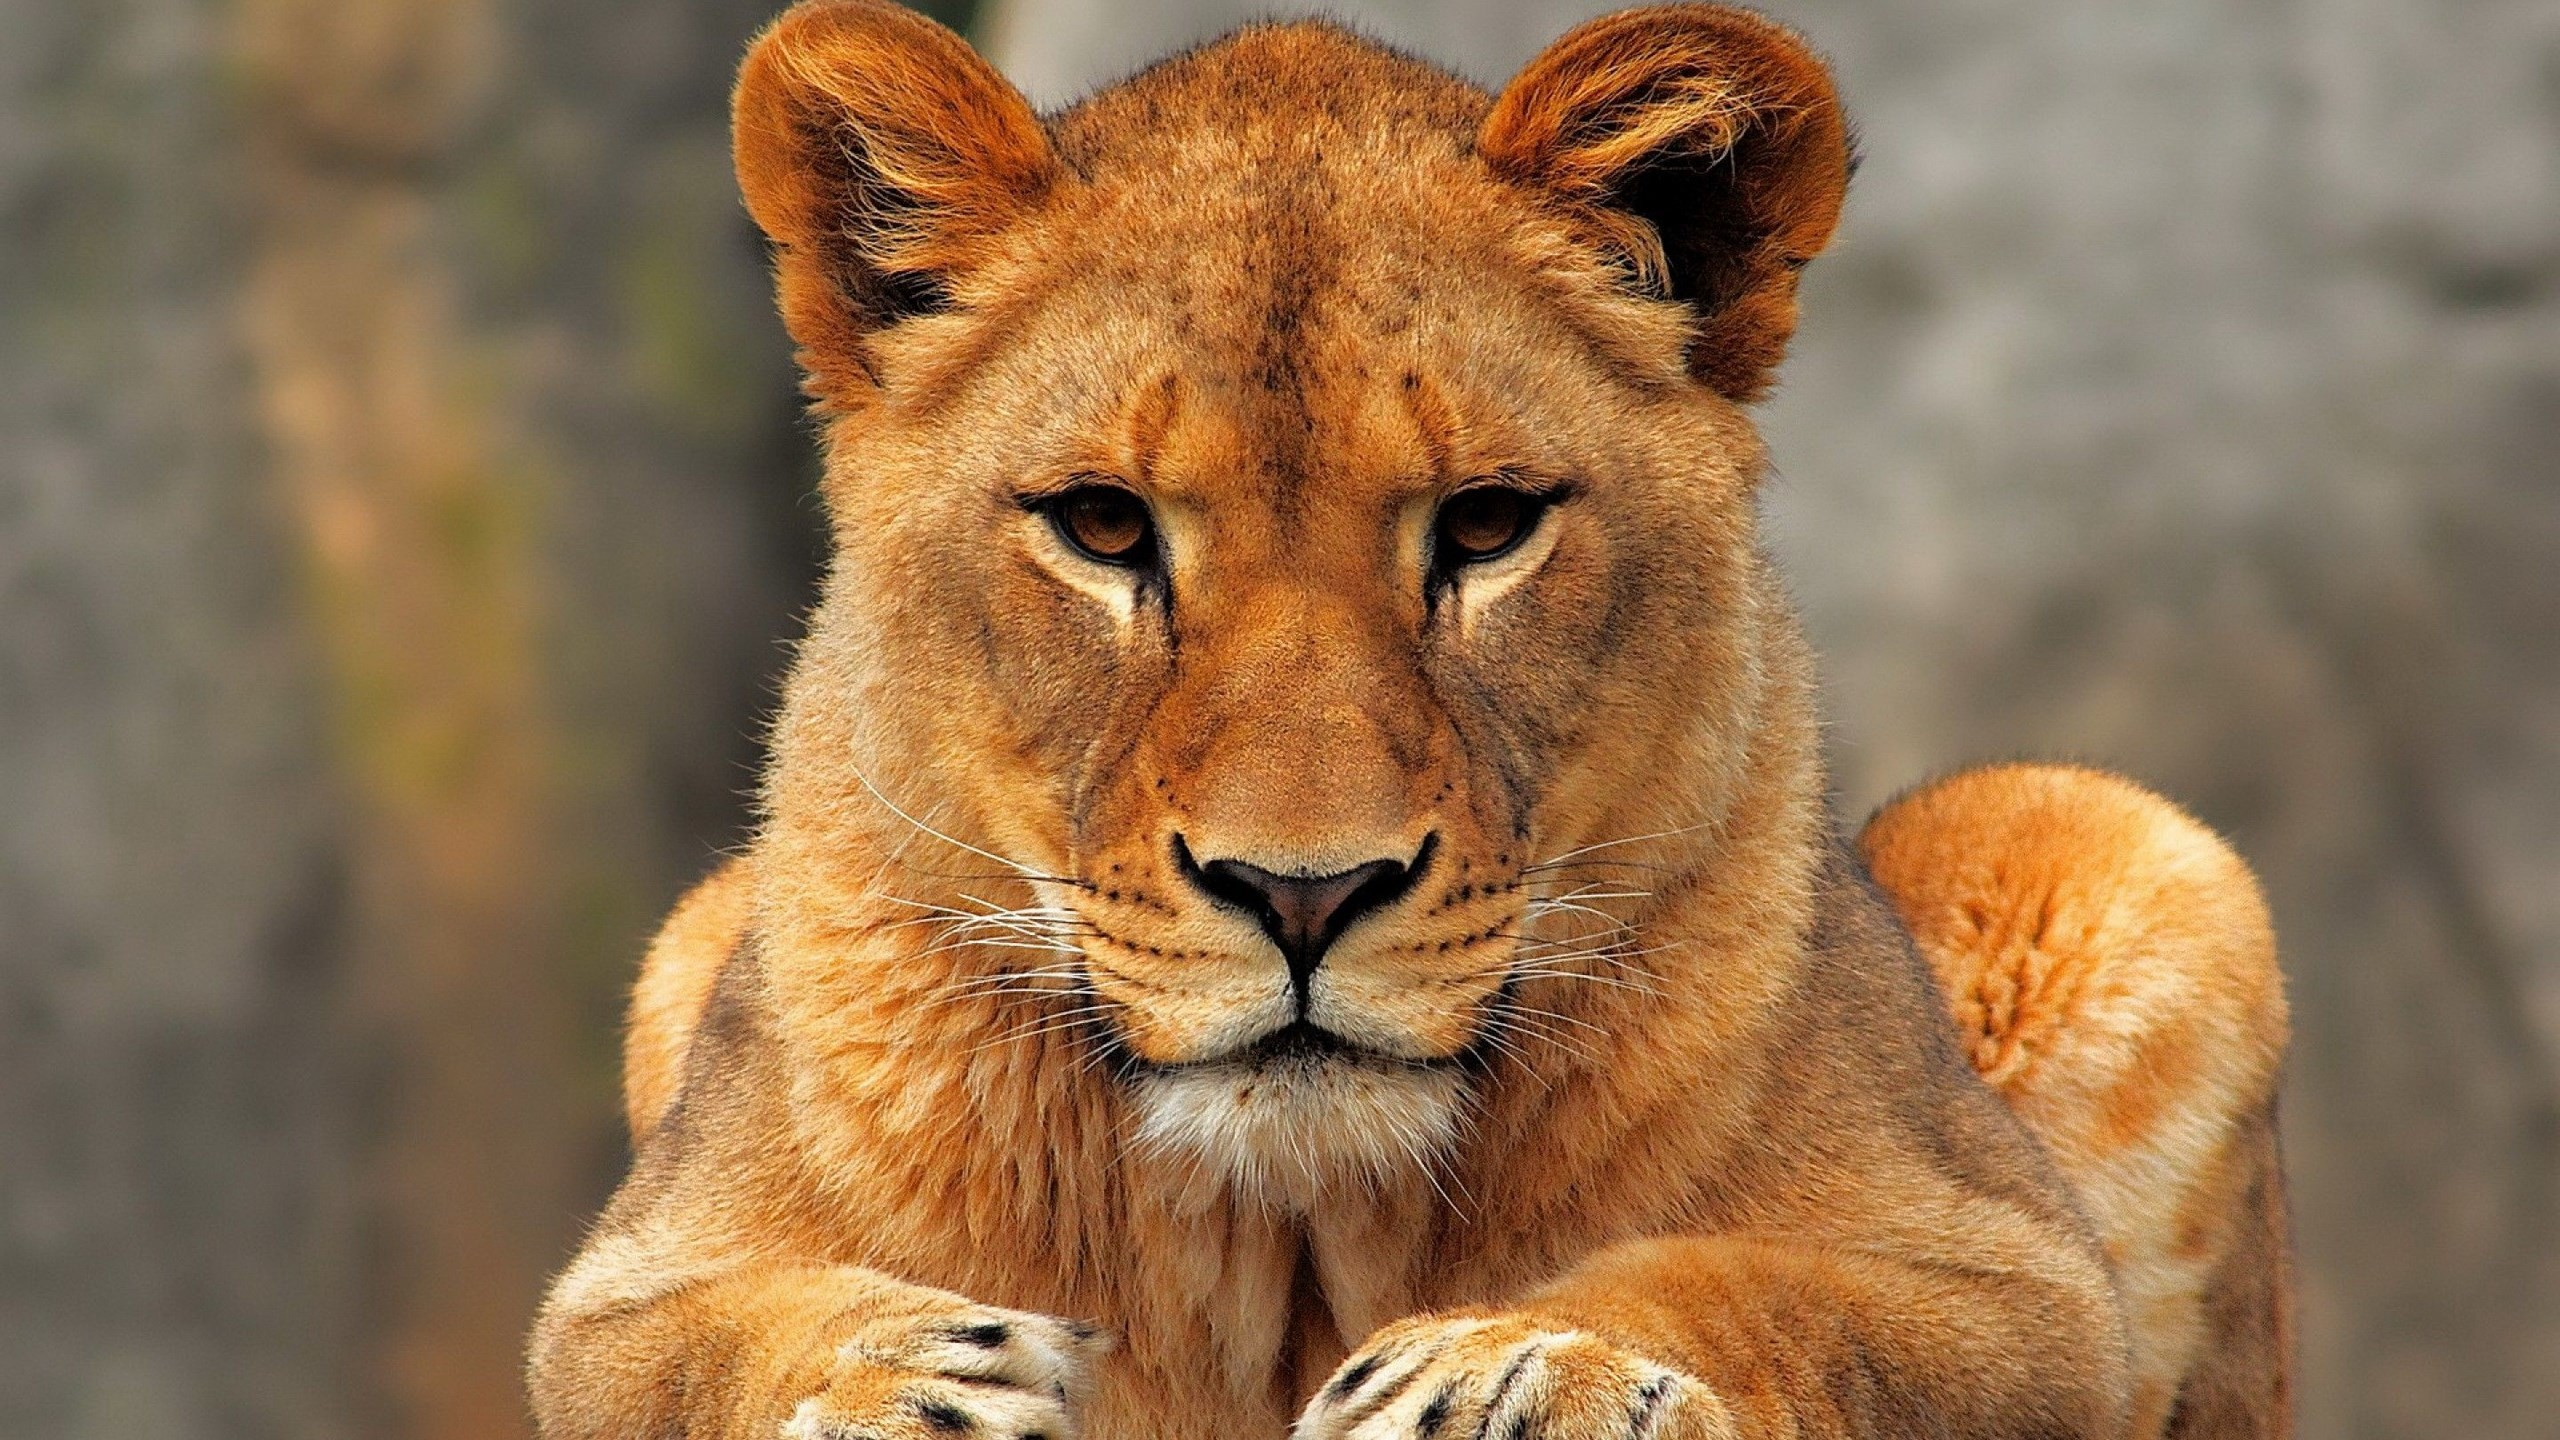 Res: 2560x1440, lioness face wallpaper hd